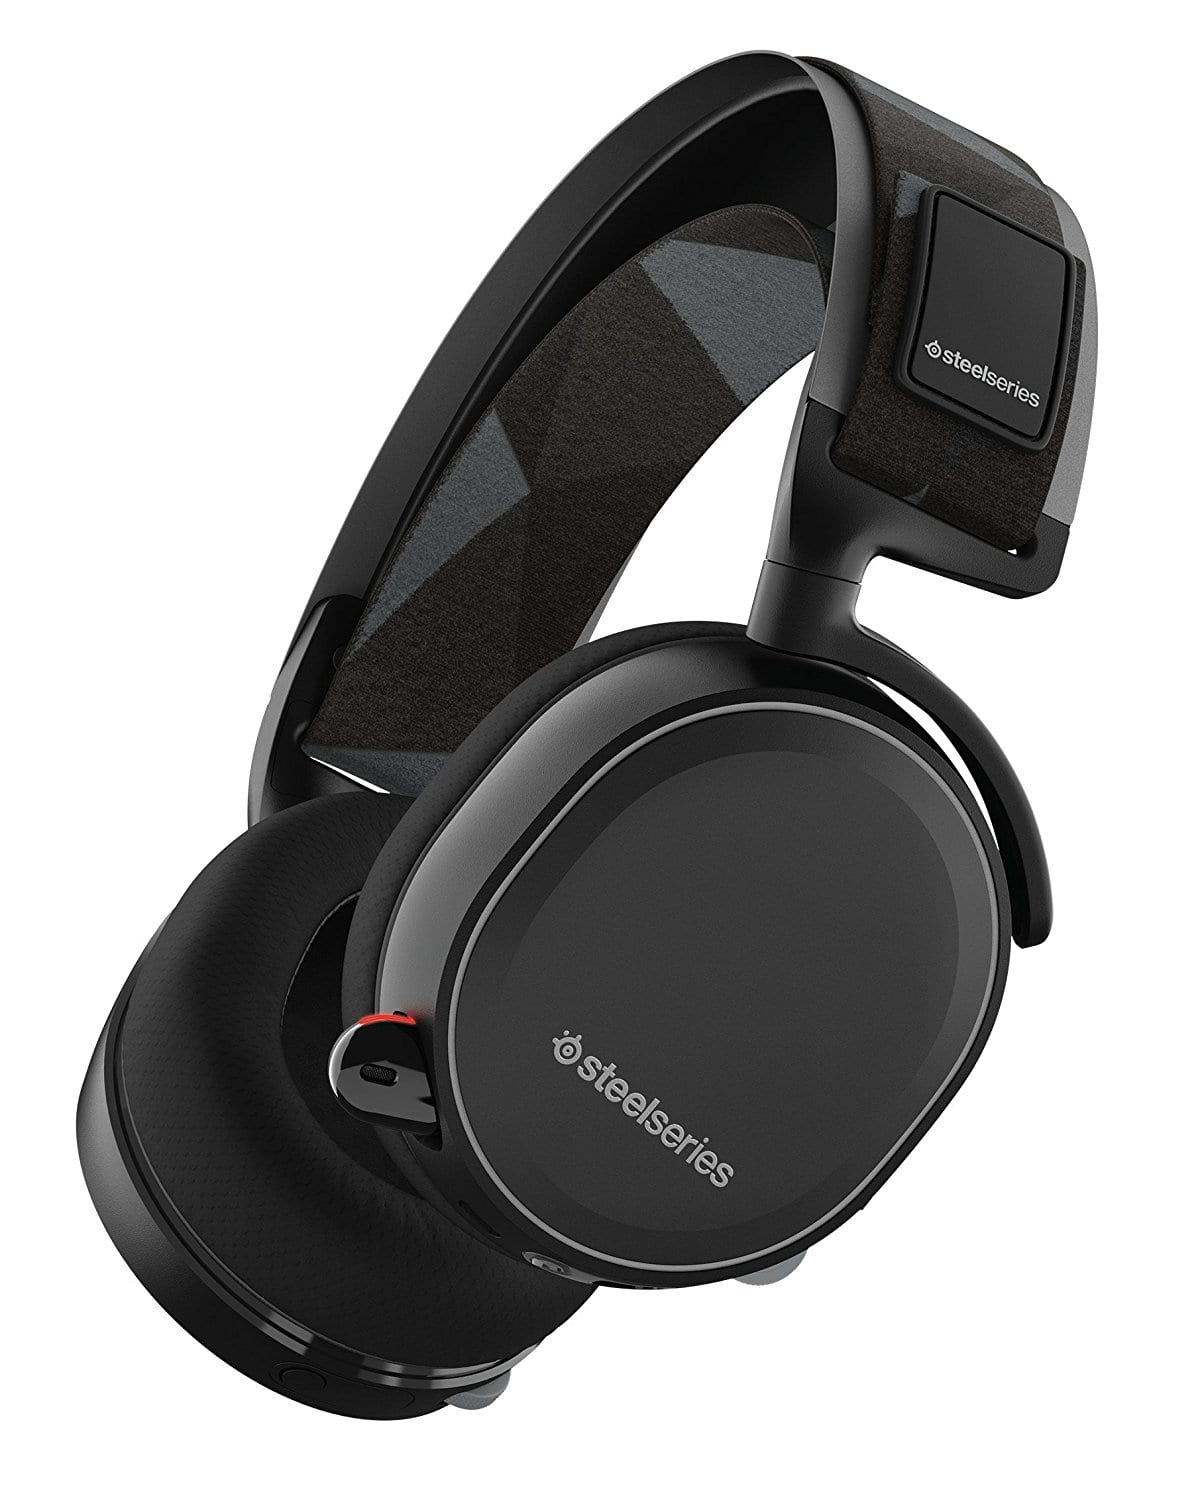 Top 8 Best Gaming Headset Surround Sound 7.1 Reviews in 2018